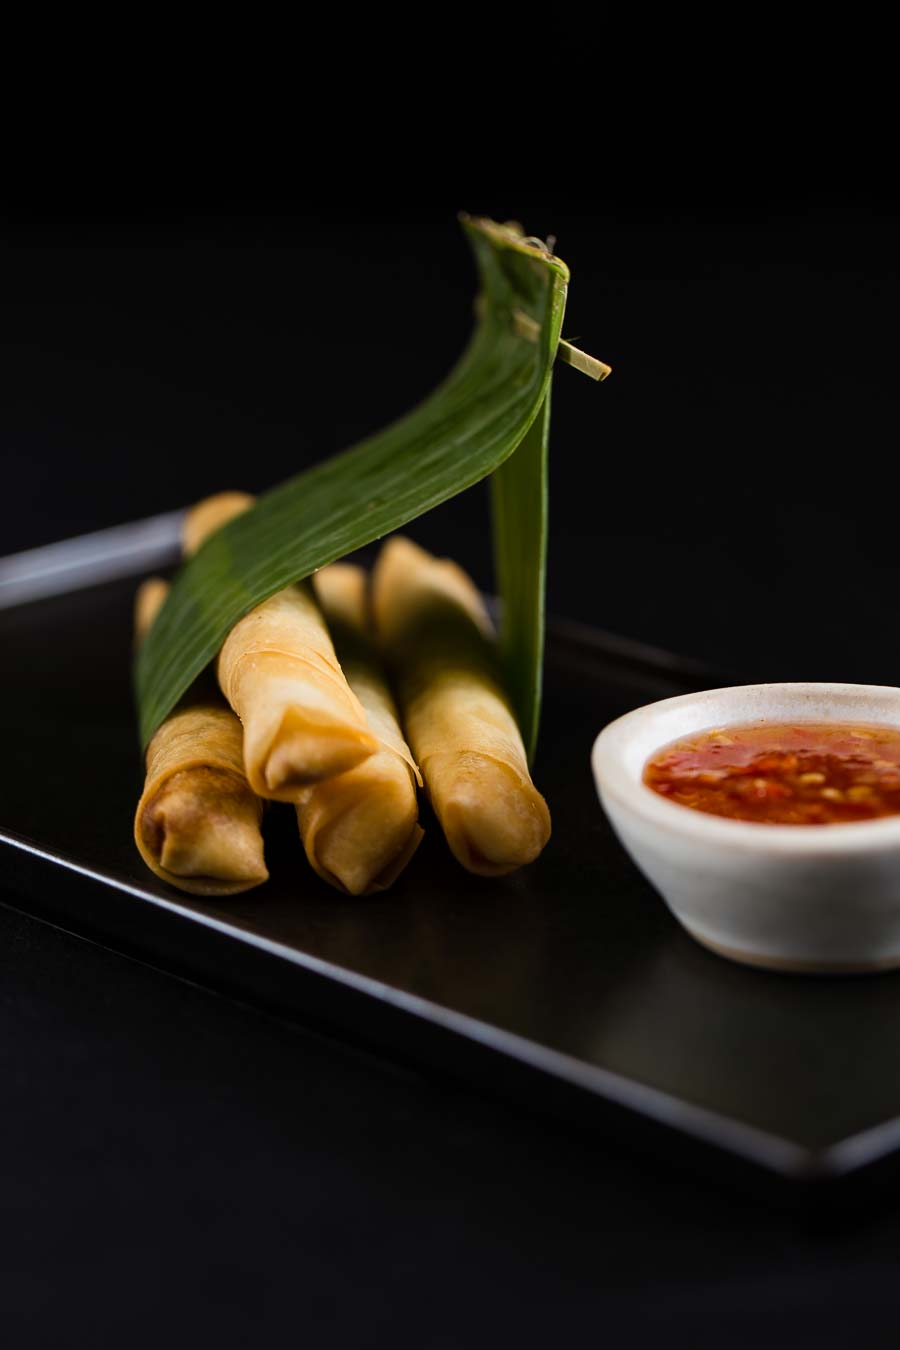 Dramatic shot of Thai spring rolls wrapped in a leaf on a black plate with a small bowl of red dipping sauce next to them.